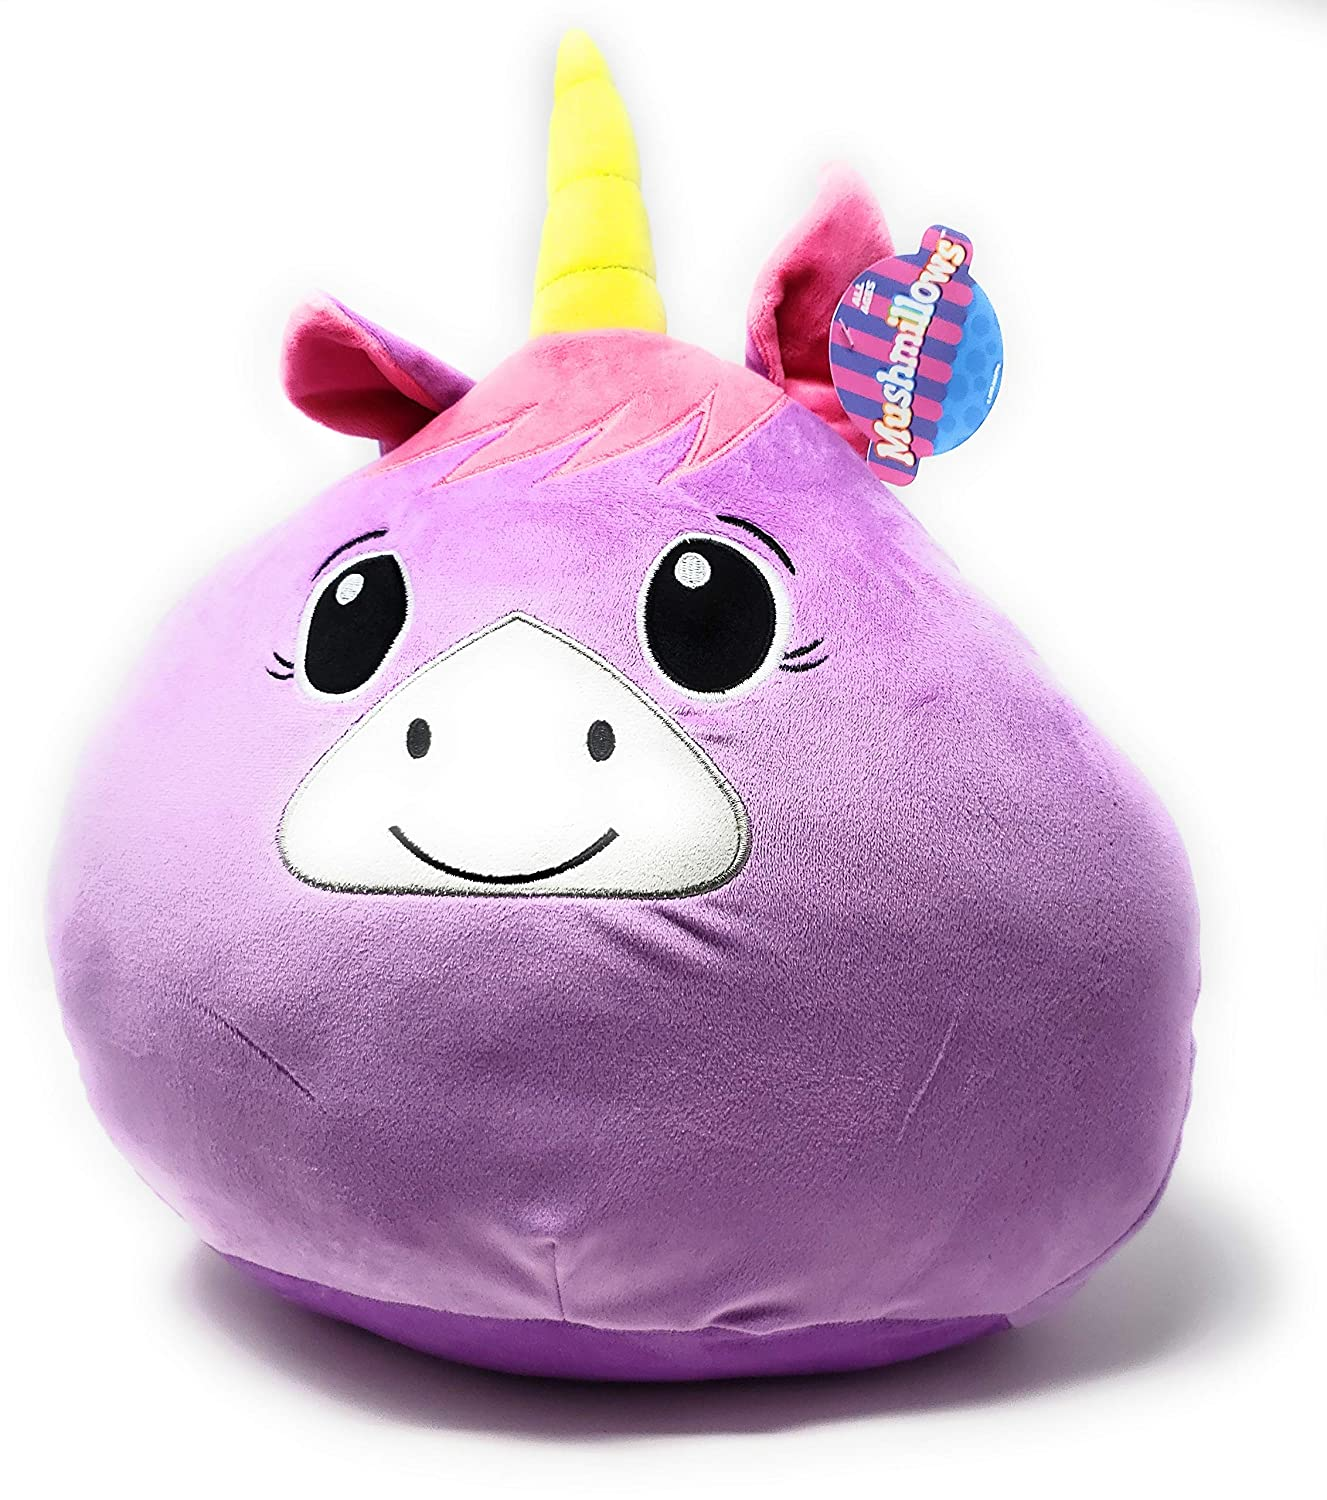 Mushmillows 16 Inch Plush Large Stuffed Animals Cute Soft Toys for Kids Children Plush Pillow Purple Unicorn Great Gift for Holidays or Parties